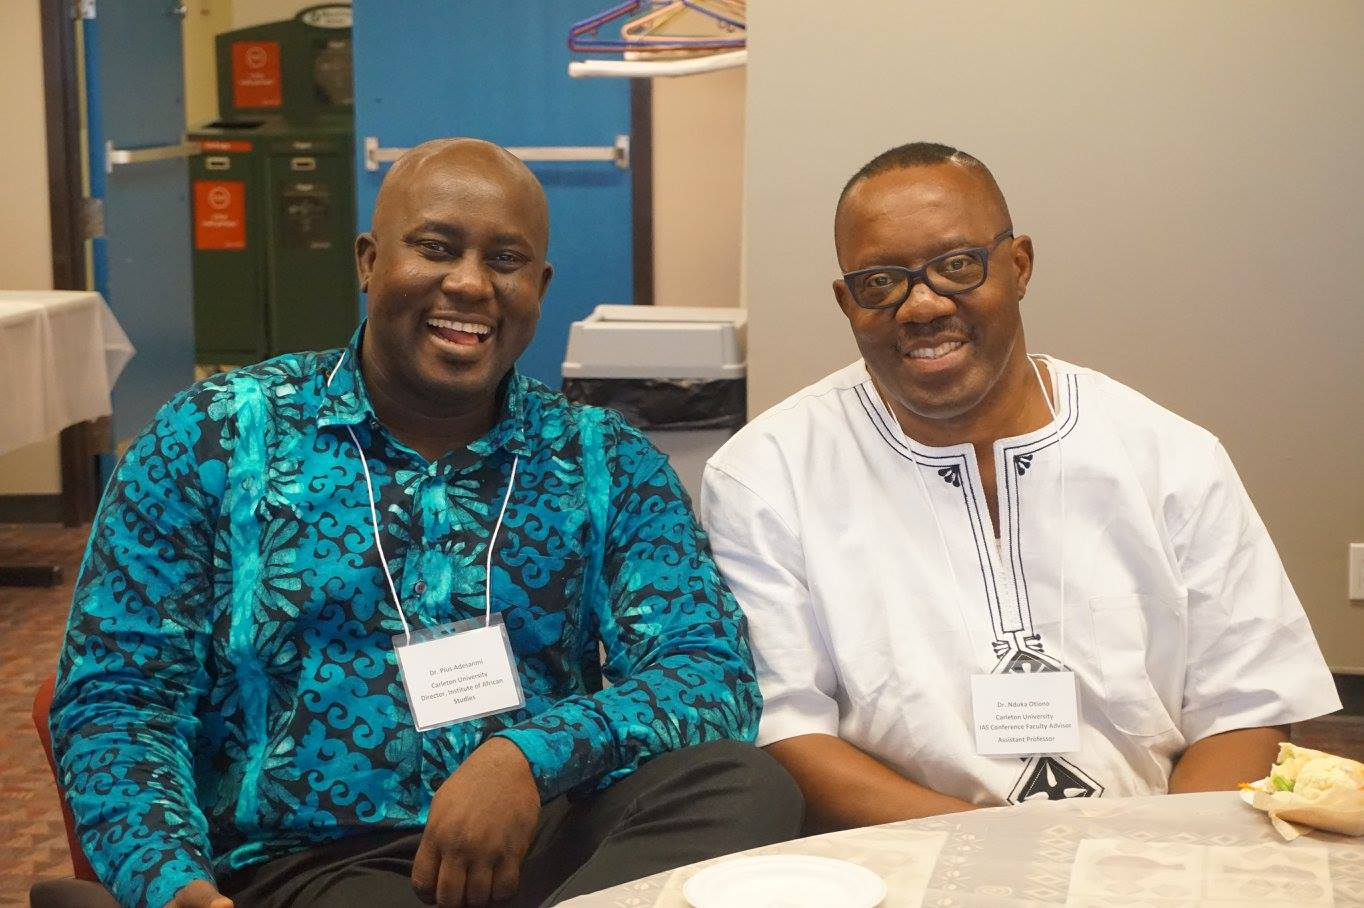 Pius Adesanmi and Nduka Otiono